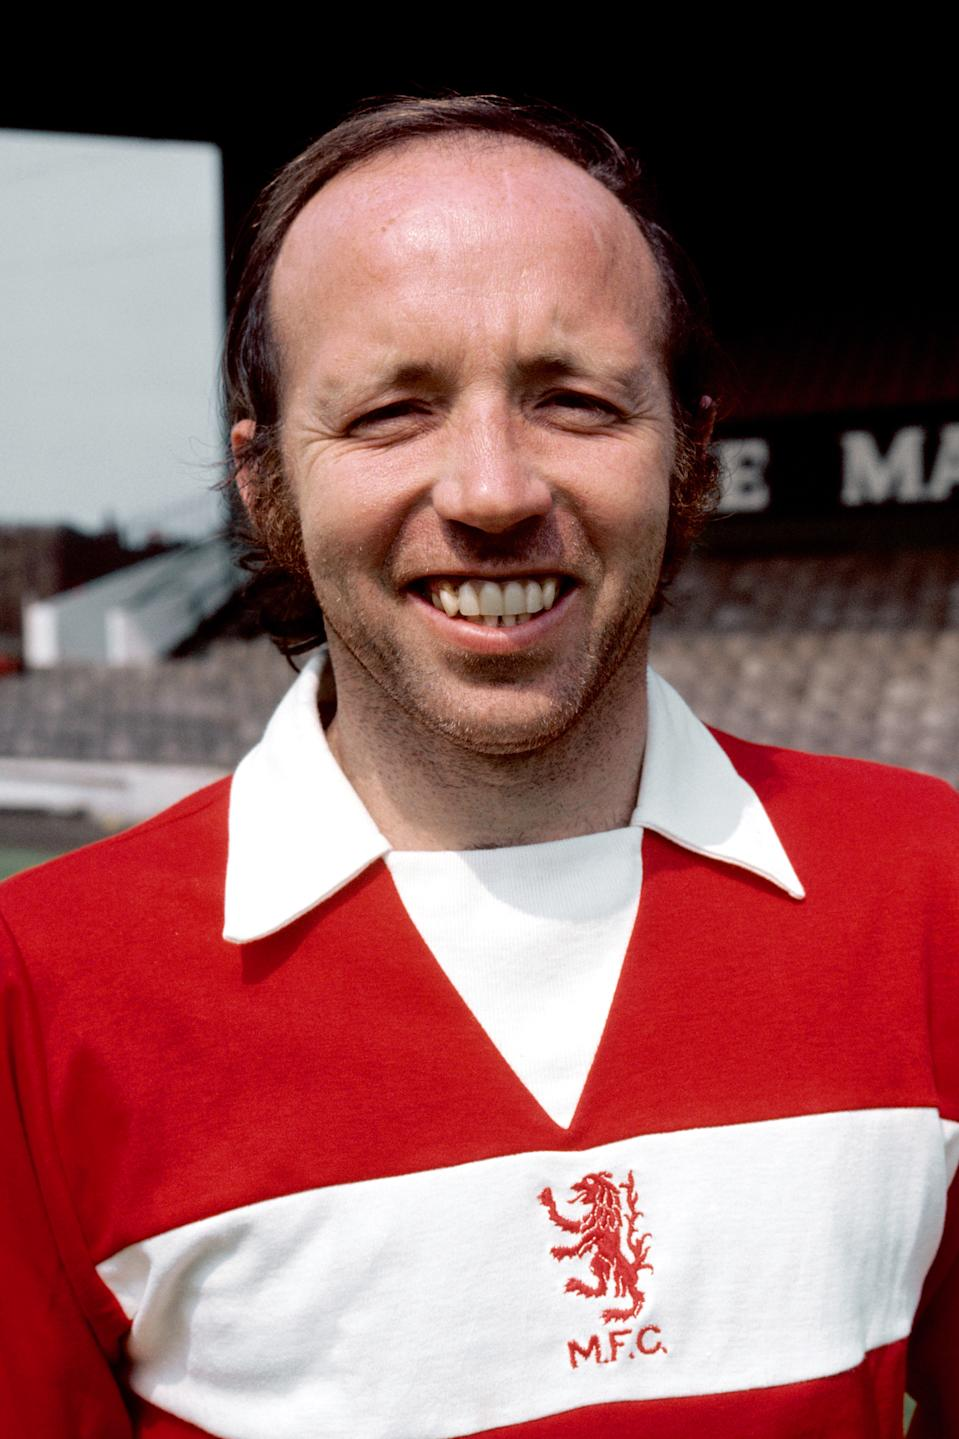 Nobby Stiles, Middlesbrough (Photo by PA Images via Getty Images)